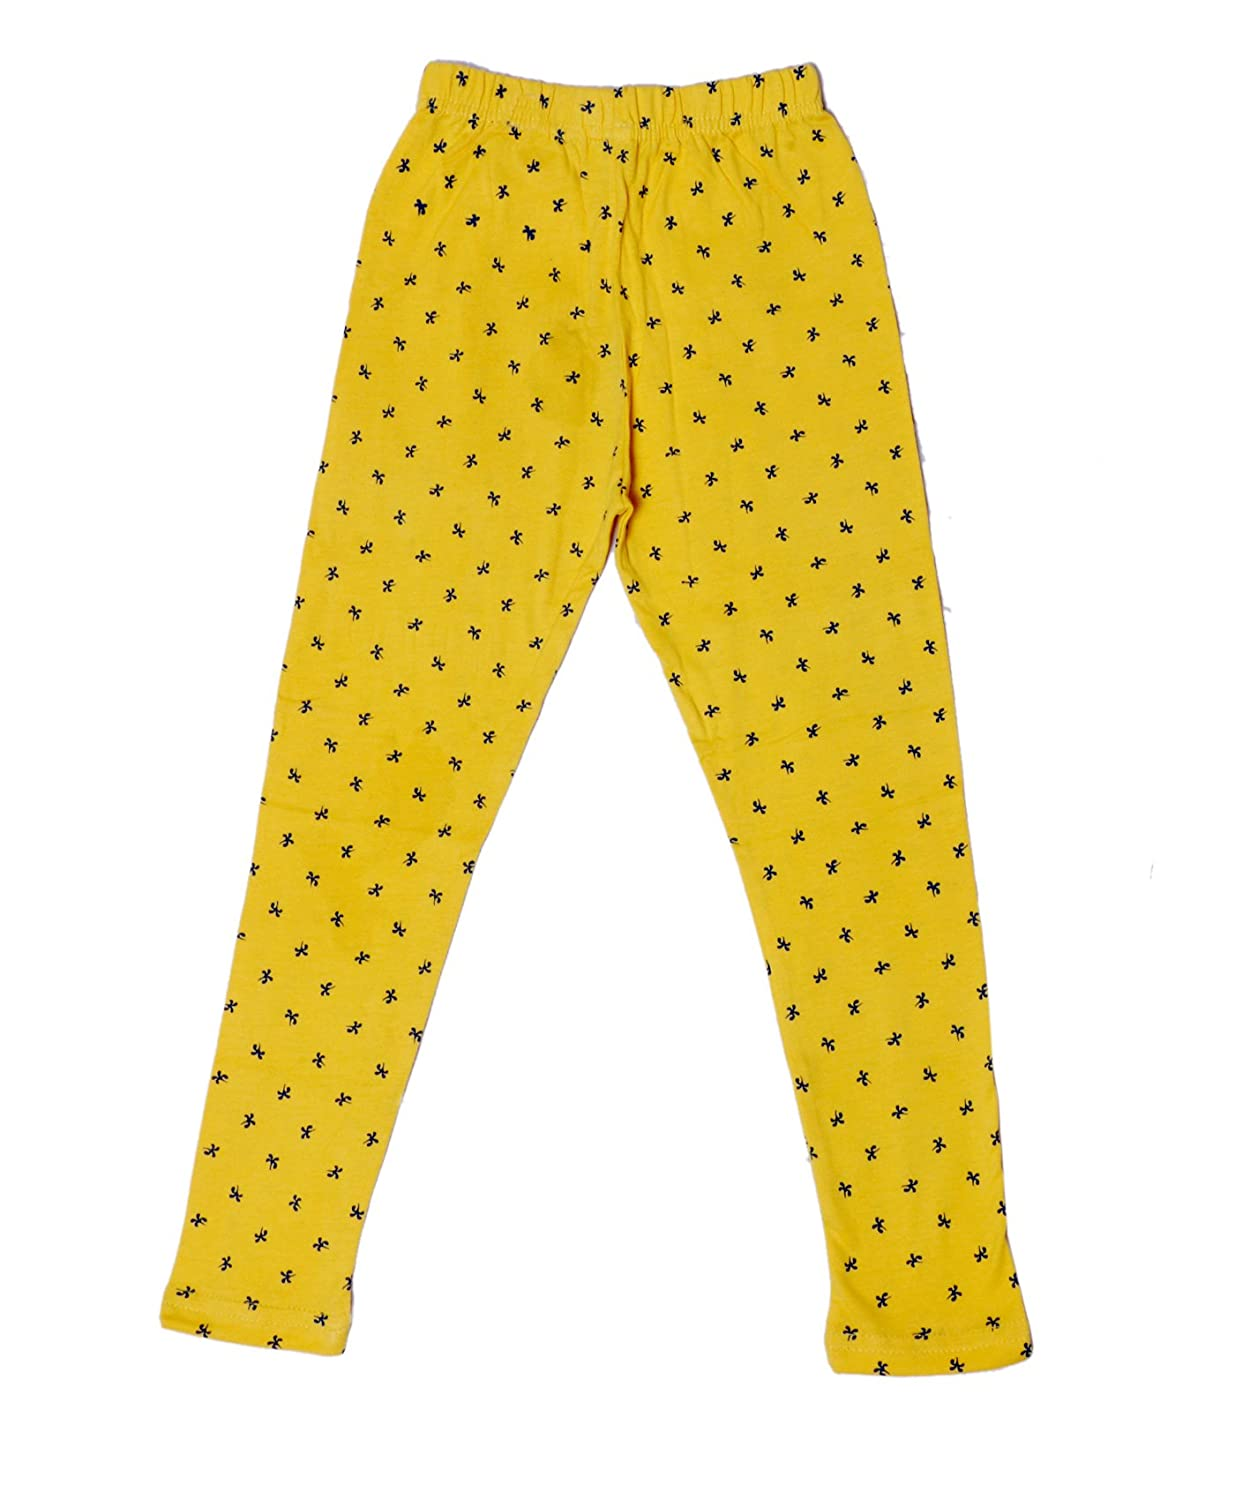 Pack of 2 Indistar Girls Super Soft and Stylish Cotton Printed Legging Pants